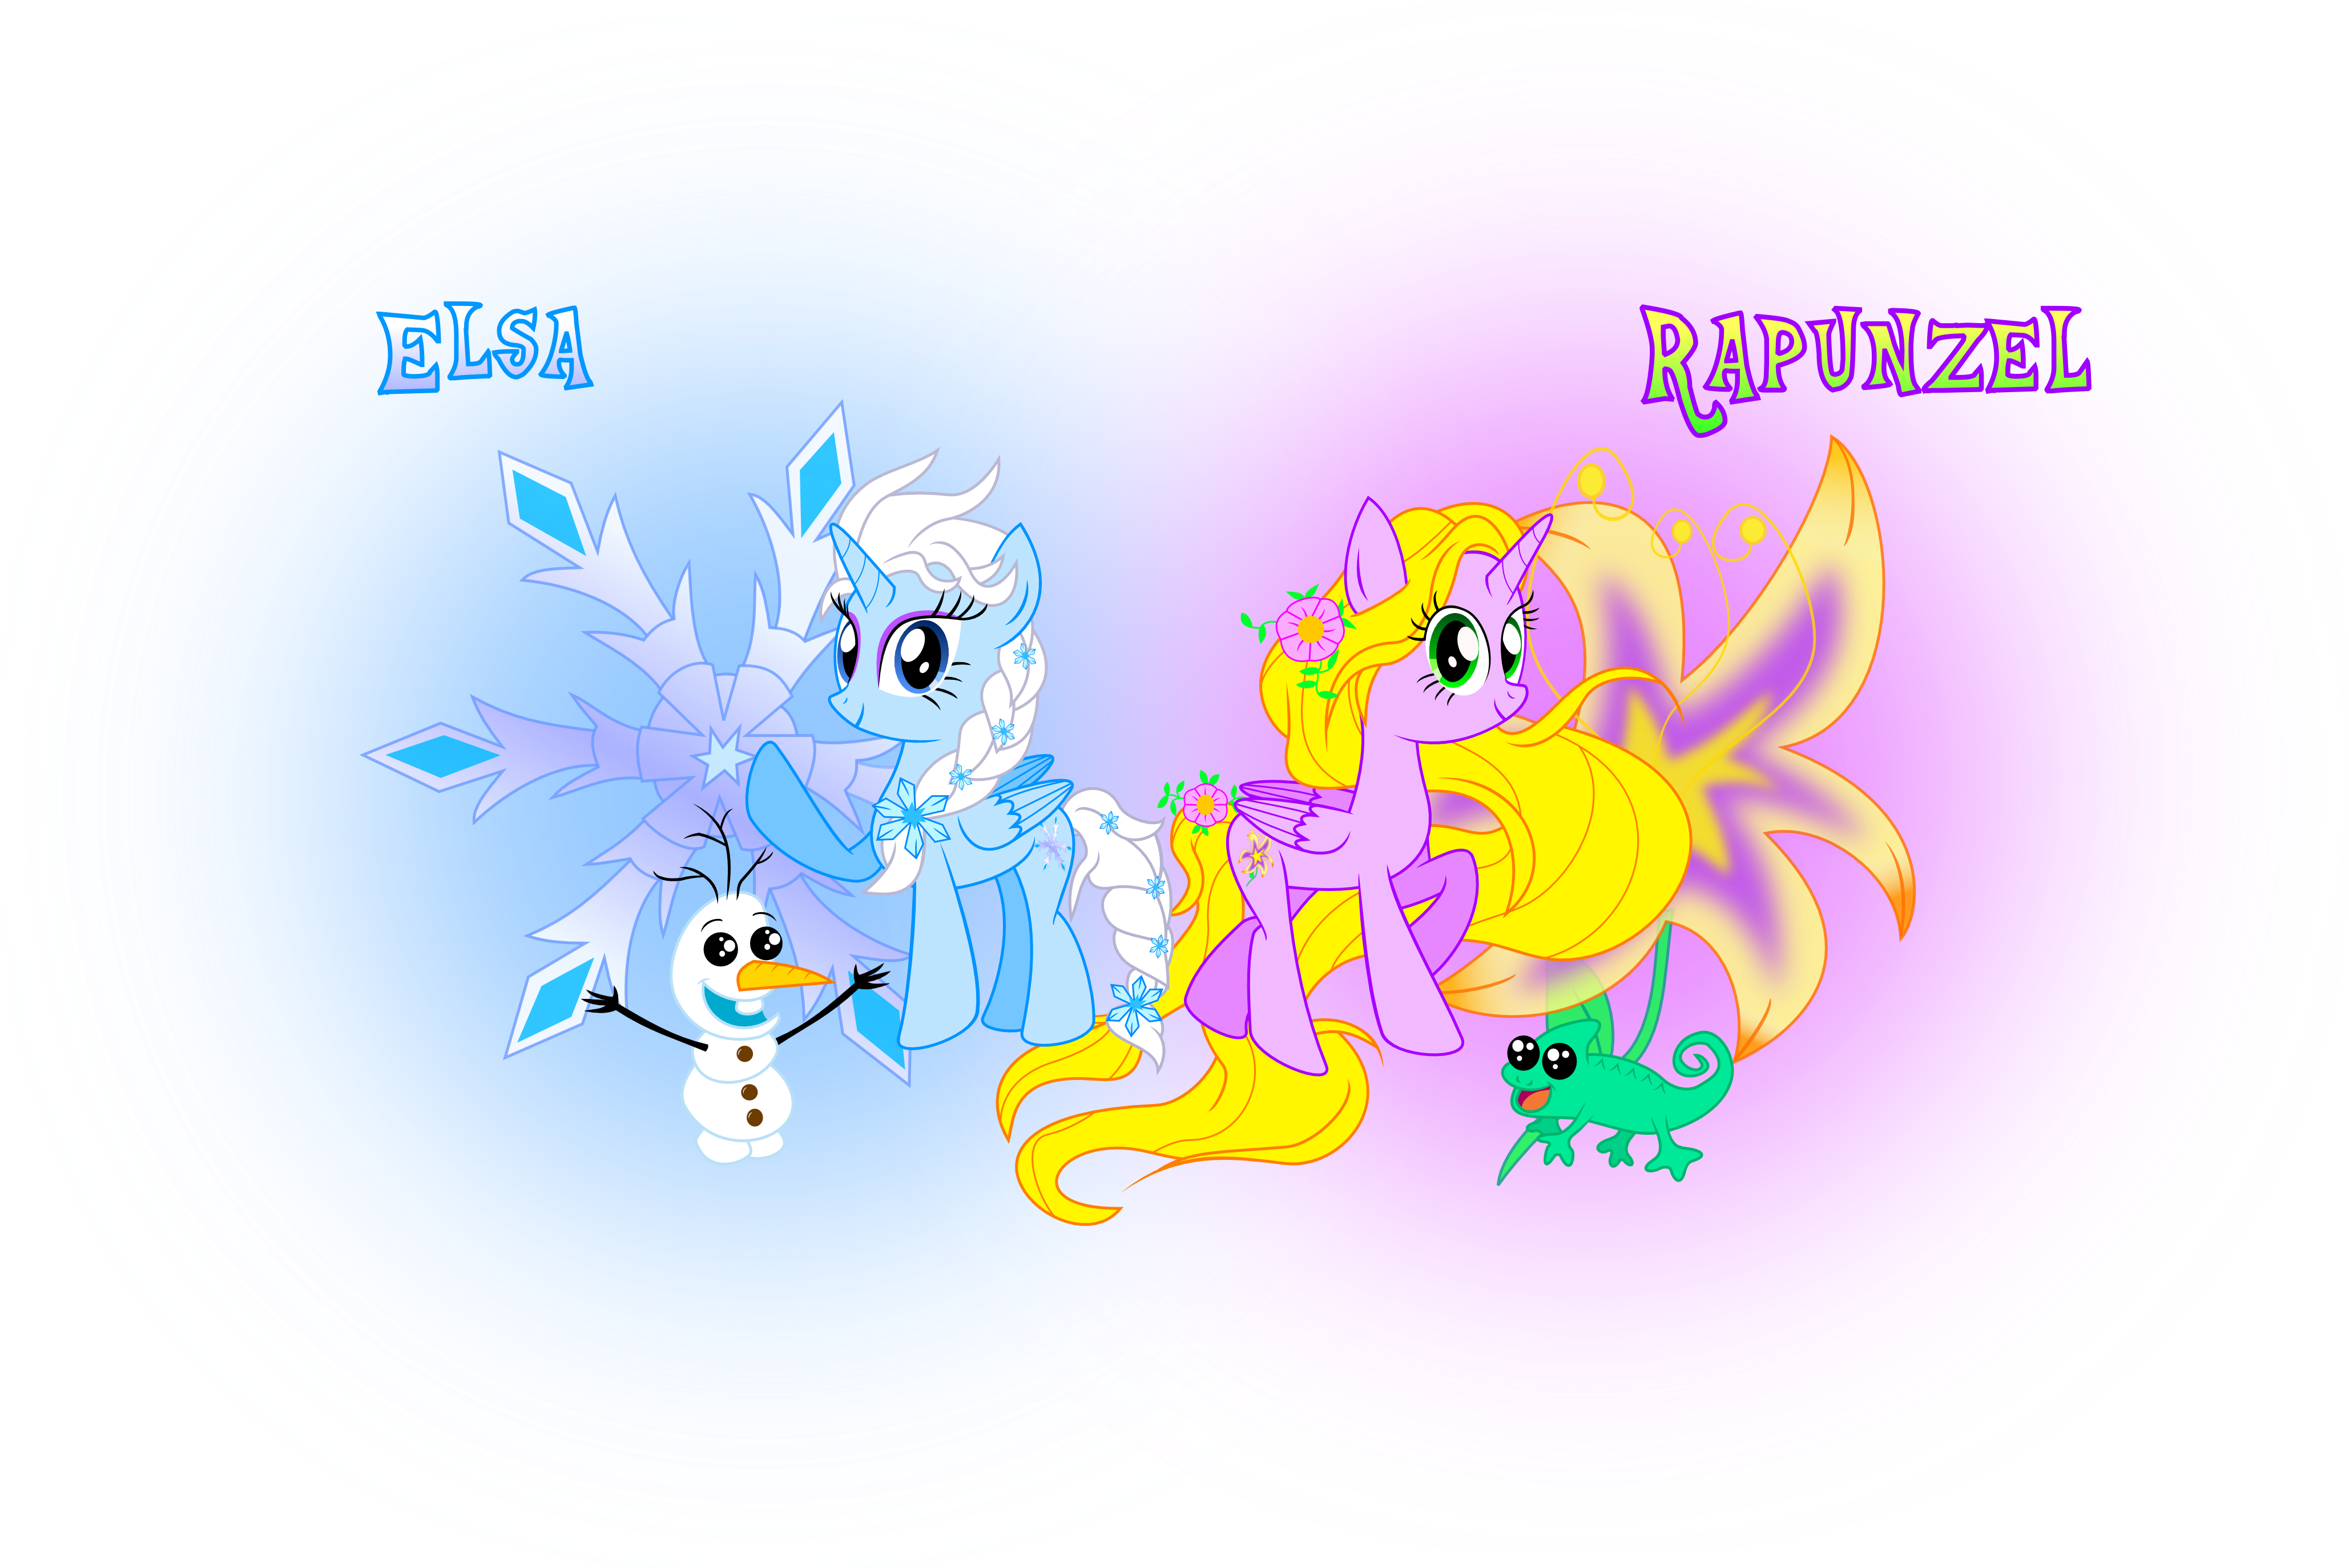 Tangled sun png clipart svg library library MLP Elsa[Frozen] and MLP Rapunzel[Tangled] by MeganLovesAngryBirds ... svg library library